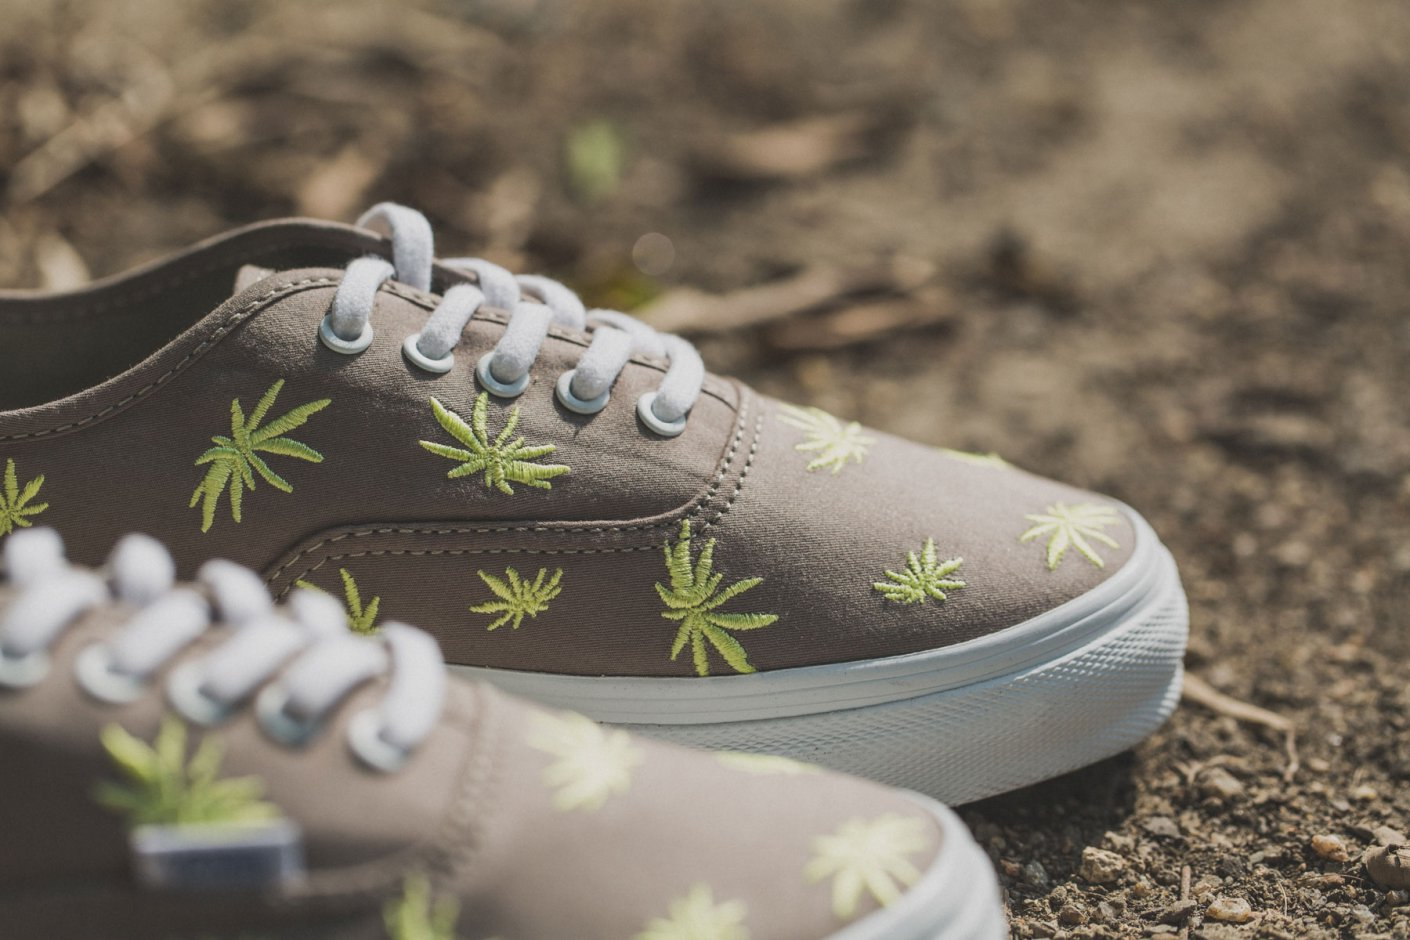 vans-palm-embroidery-5